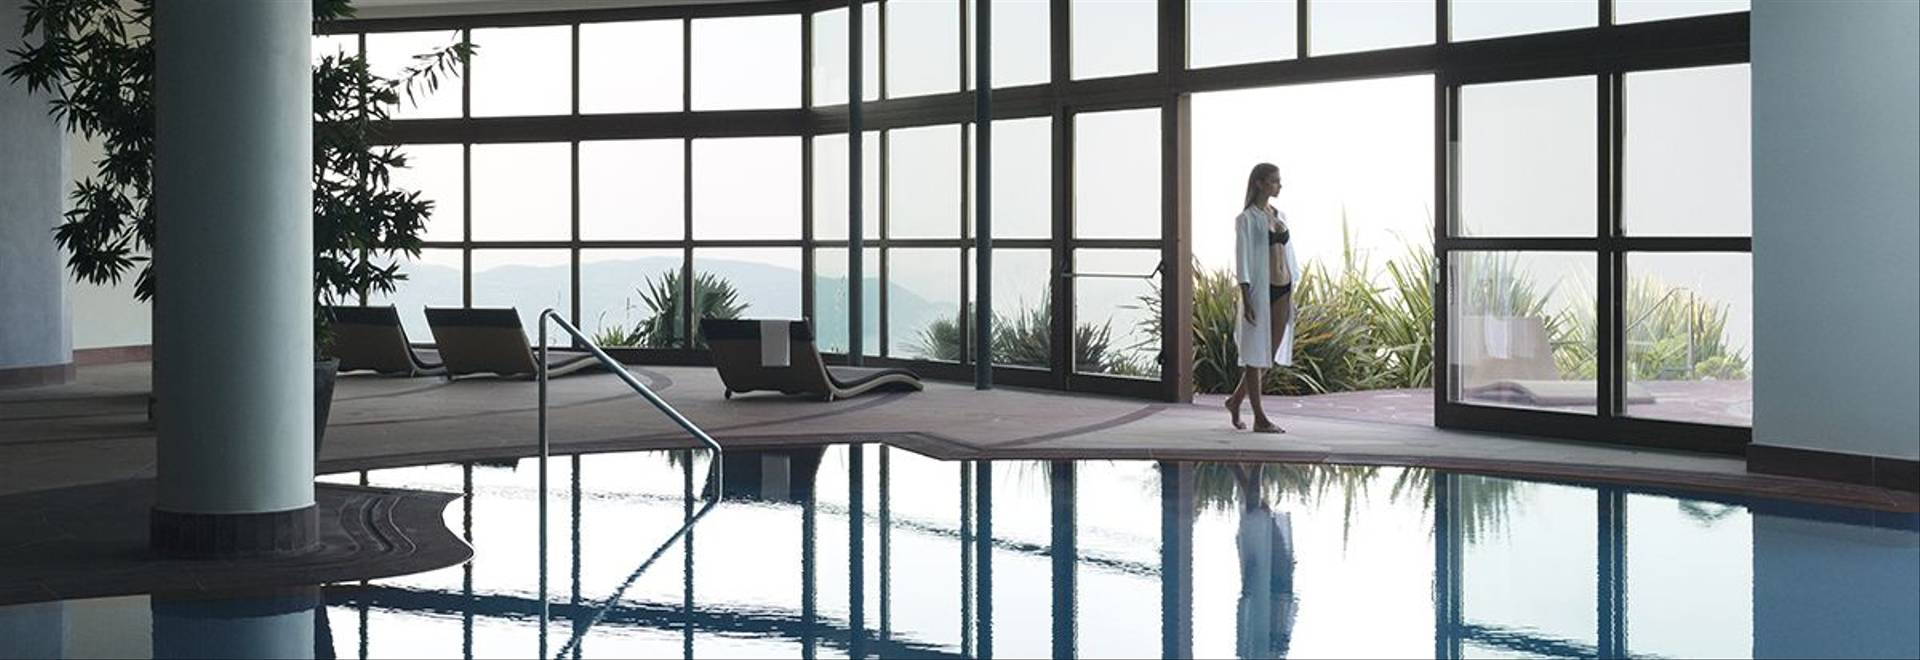 05 Pool Indoor Outdoor Internal With Model